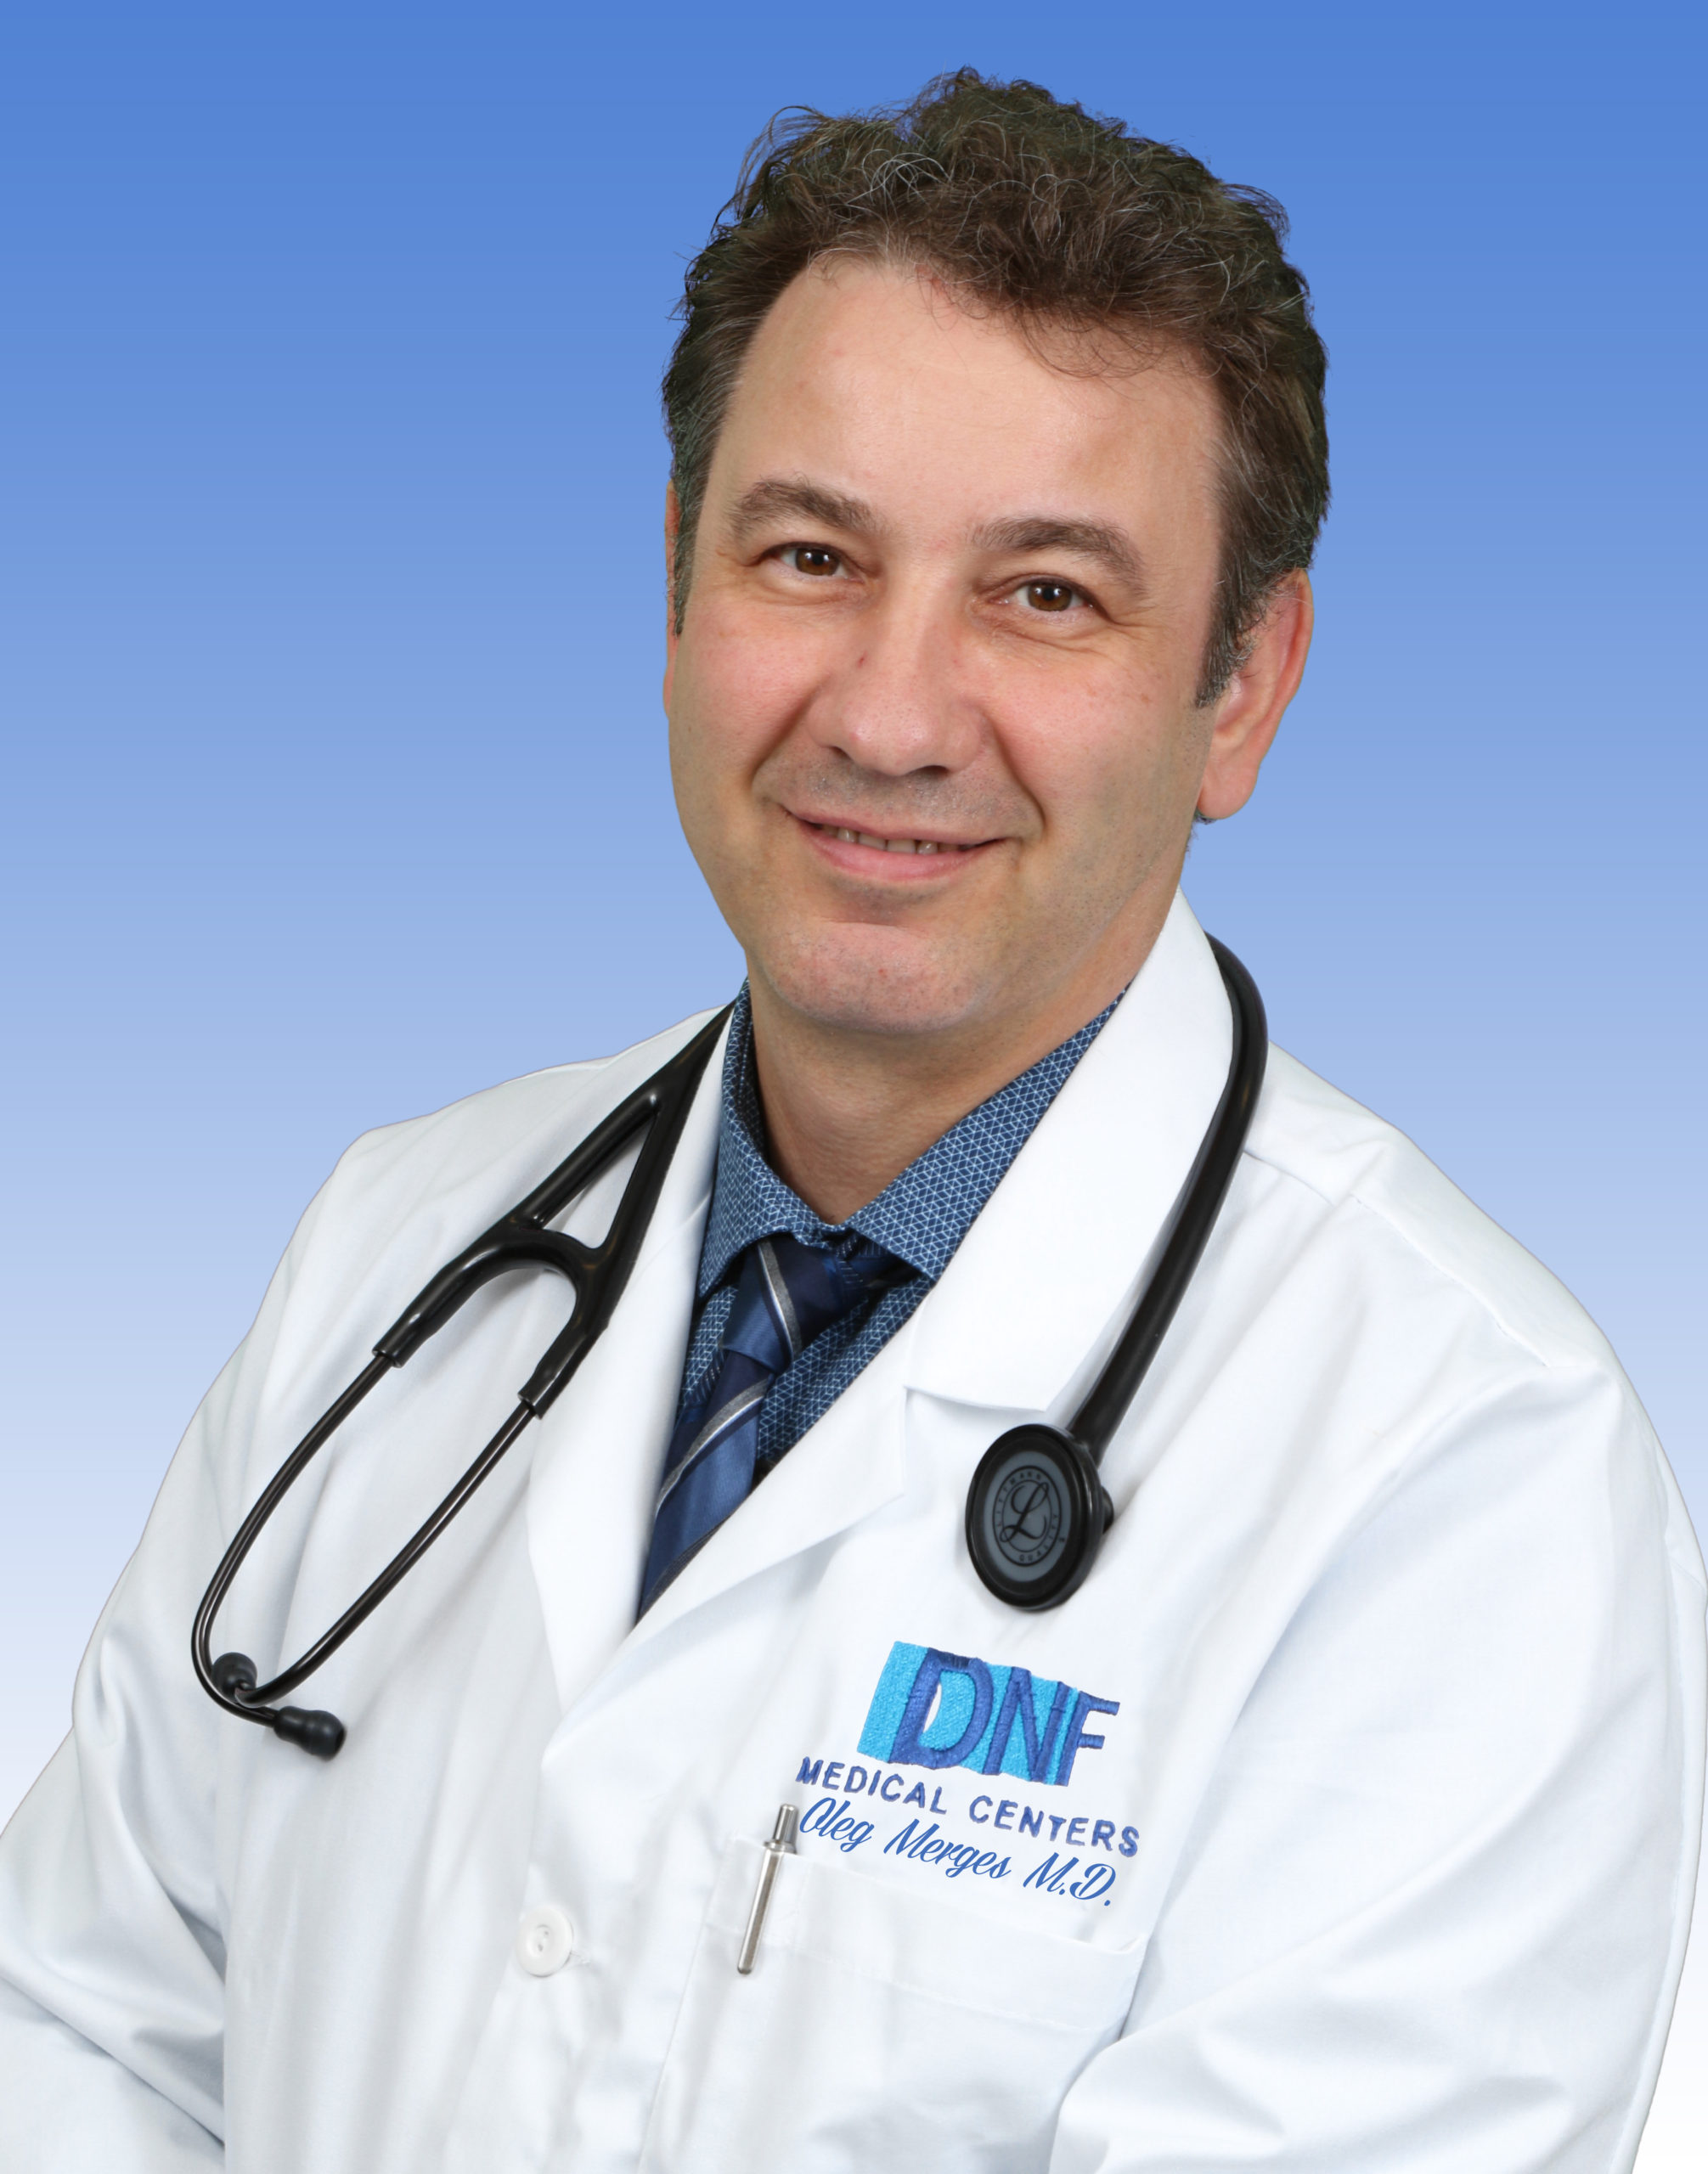 Oleg Merges, MD